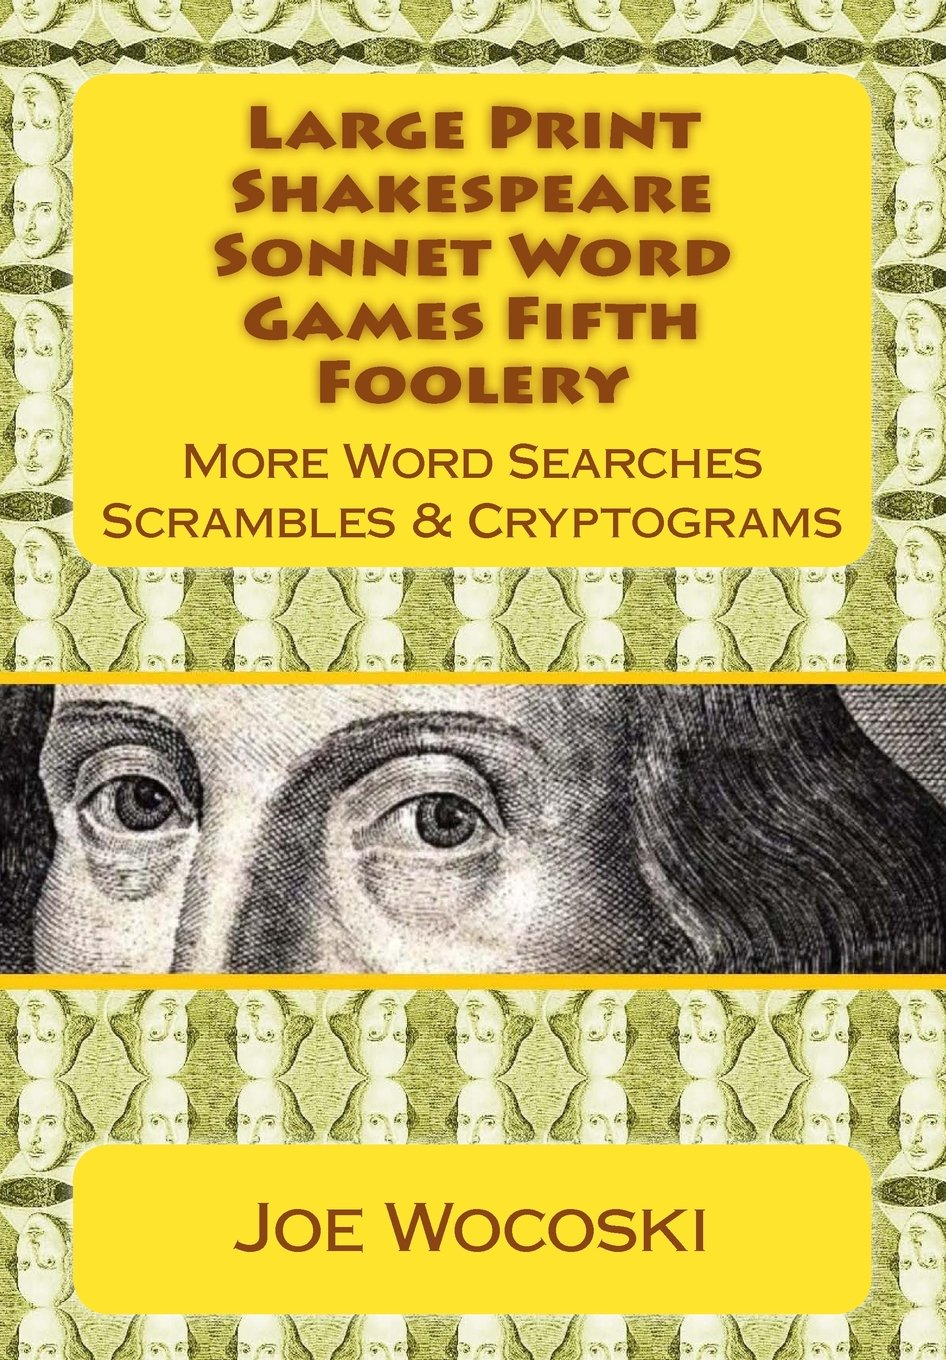 Download Large Print Shakespeare Sonnet Word Games Fifth Foolery: More Word Searches Scrambles & Cryptograms (Shakespeare Sonnet Word Games Foolery) (Volume 5) pdf epub